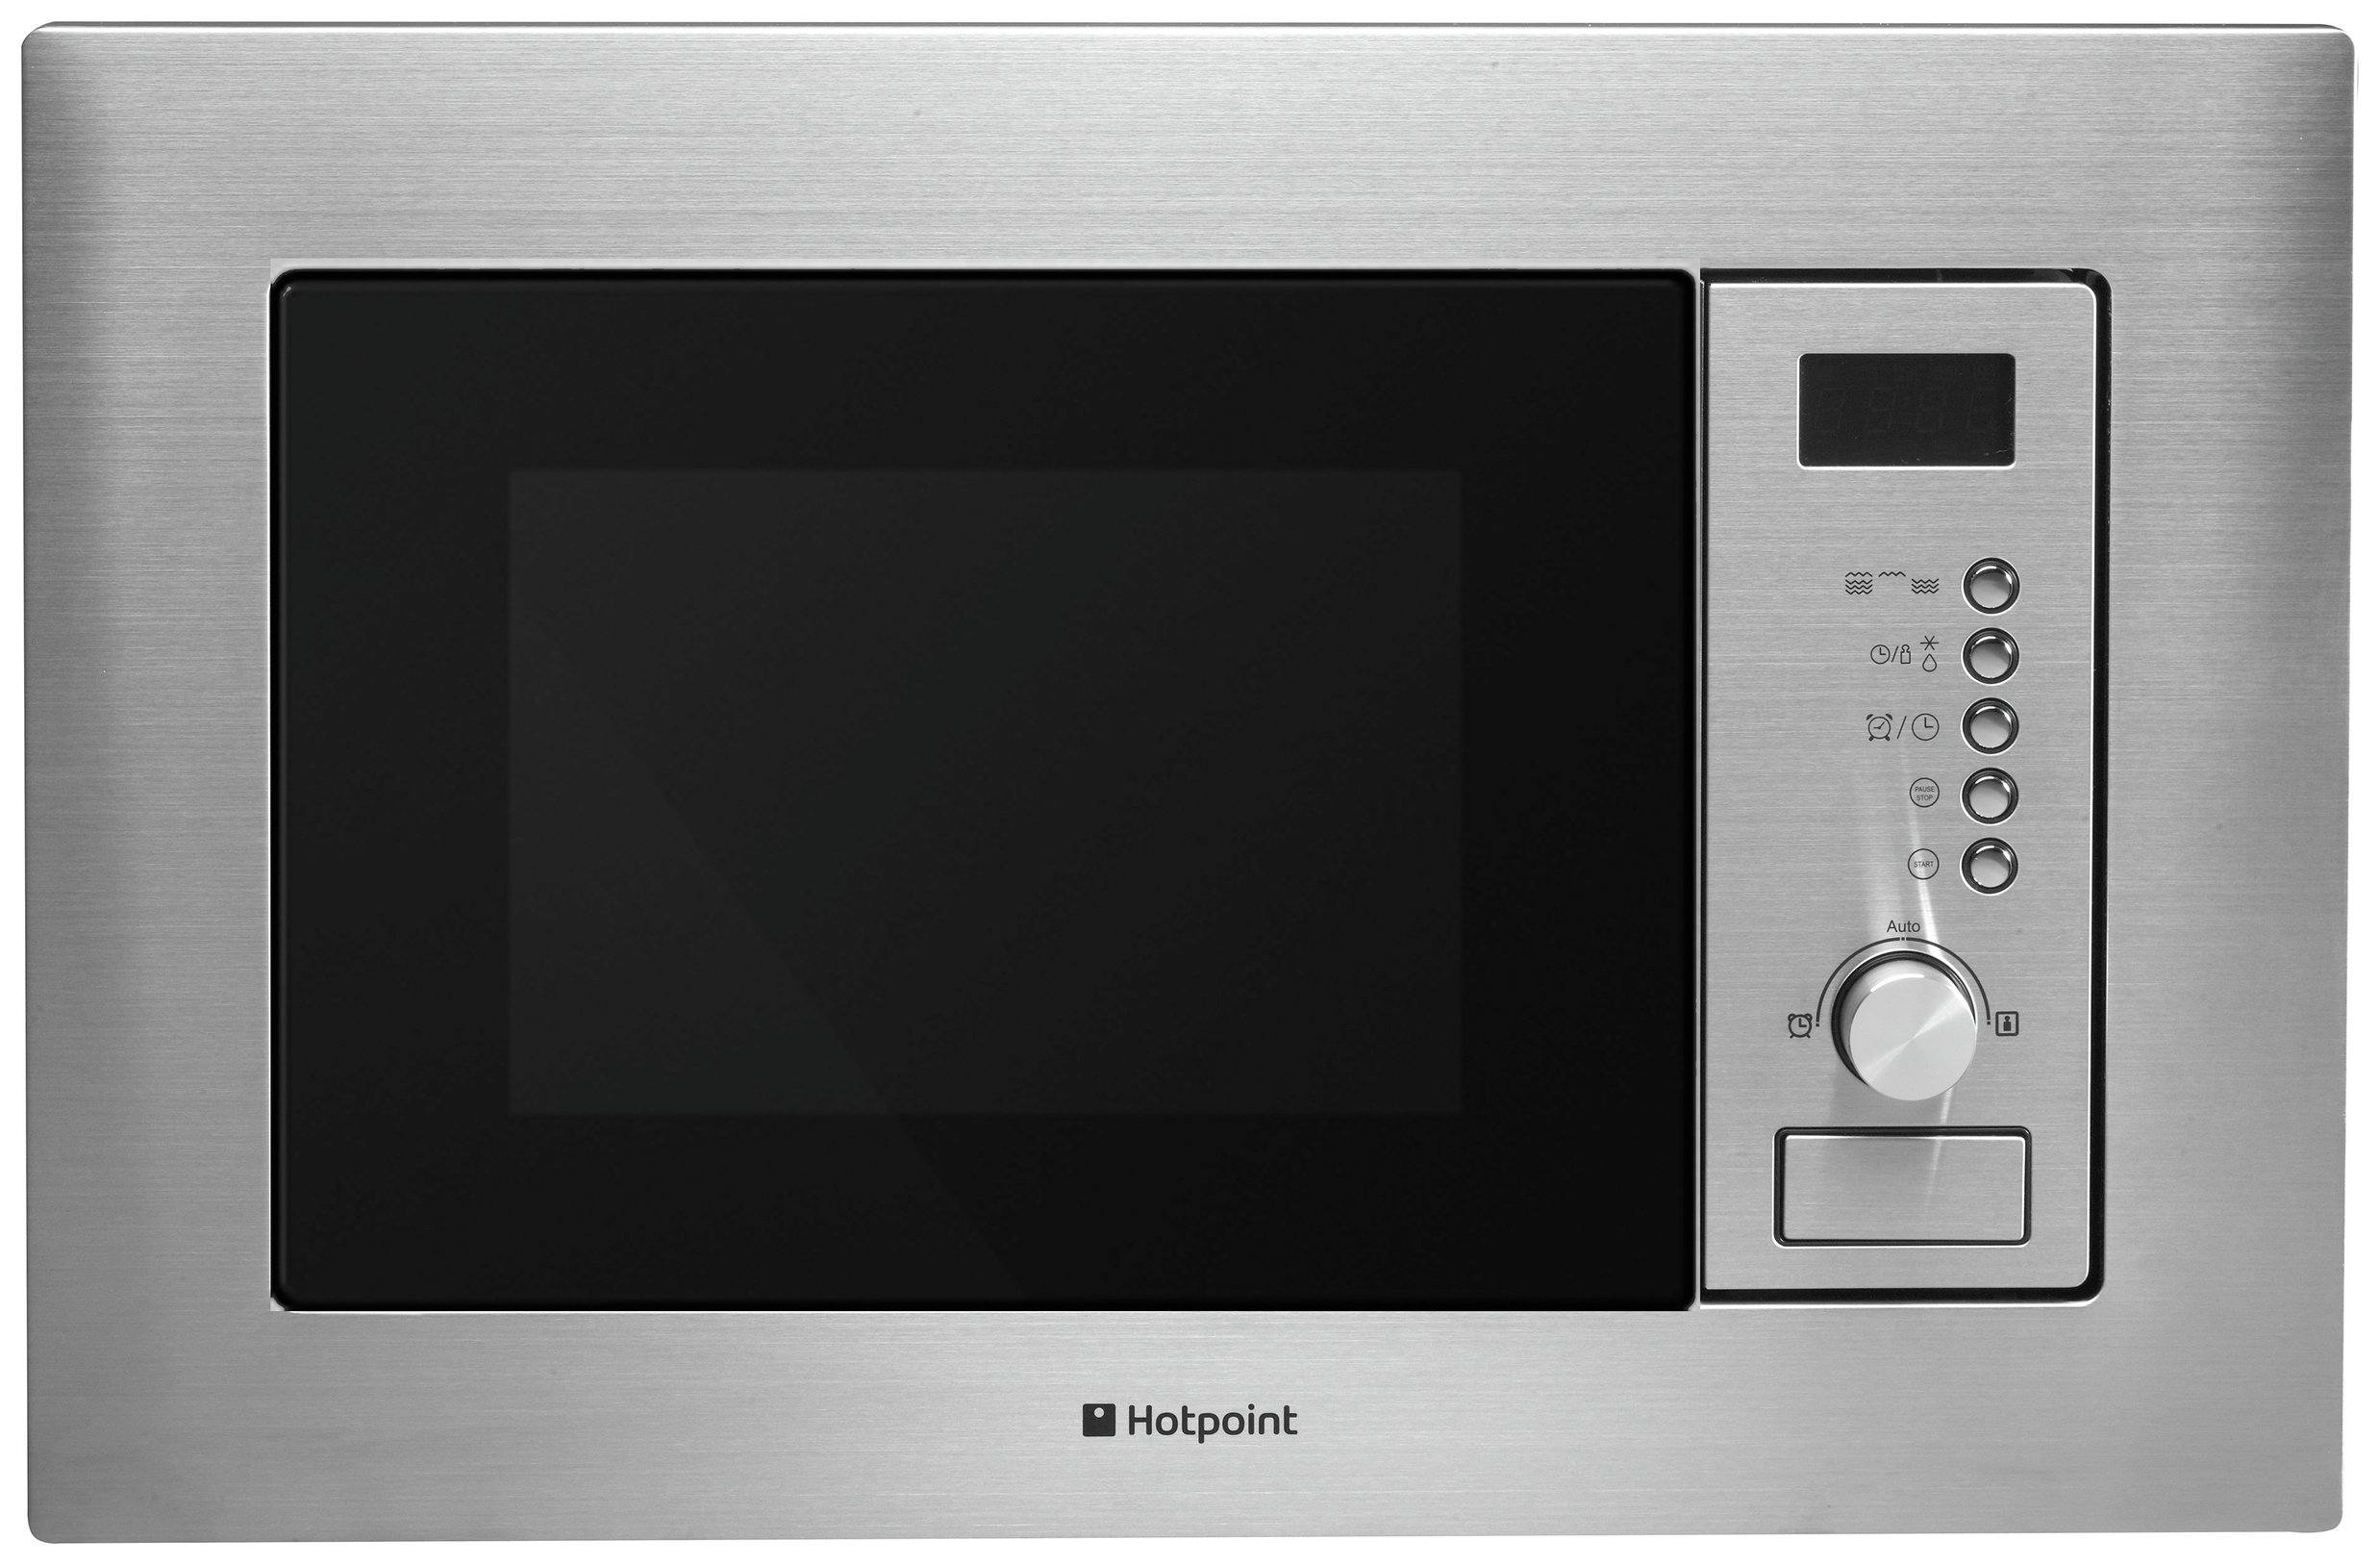 Hotpoint - Microwave - MWH1221X Built-in - Stainless Steel